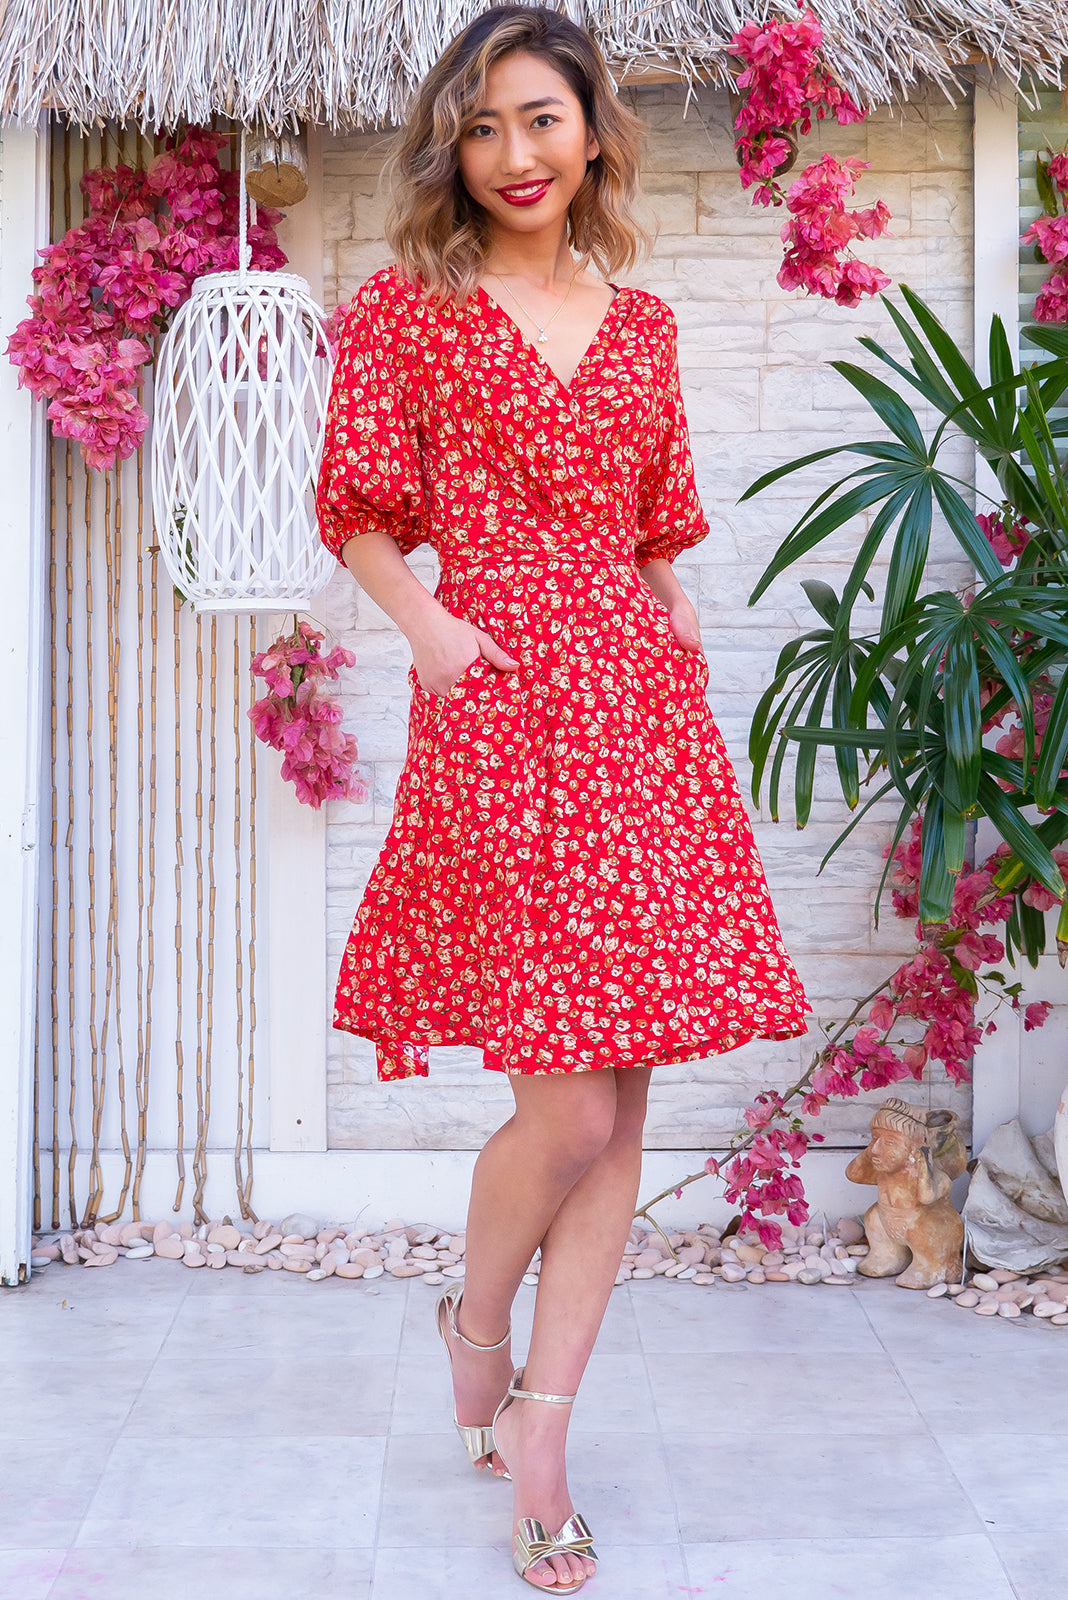 The Poppi Crimson and Clover Wrap Dress features flattering adjustable wrap design, elasticated waist band at the back, puff sleeves, side pockets and 100% rayon in red base with beige and green floral print.